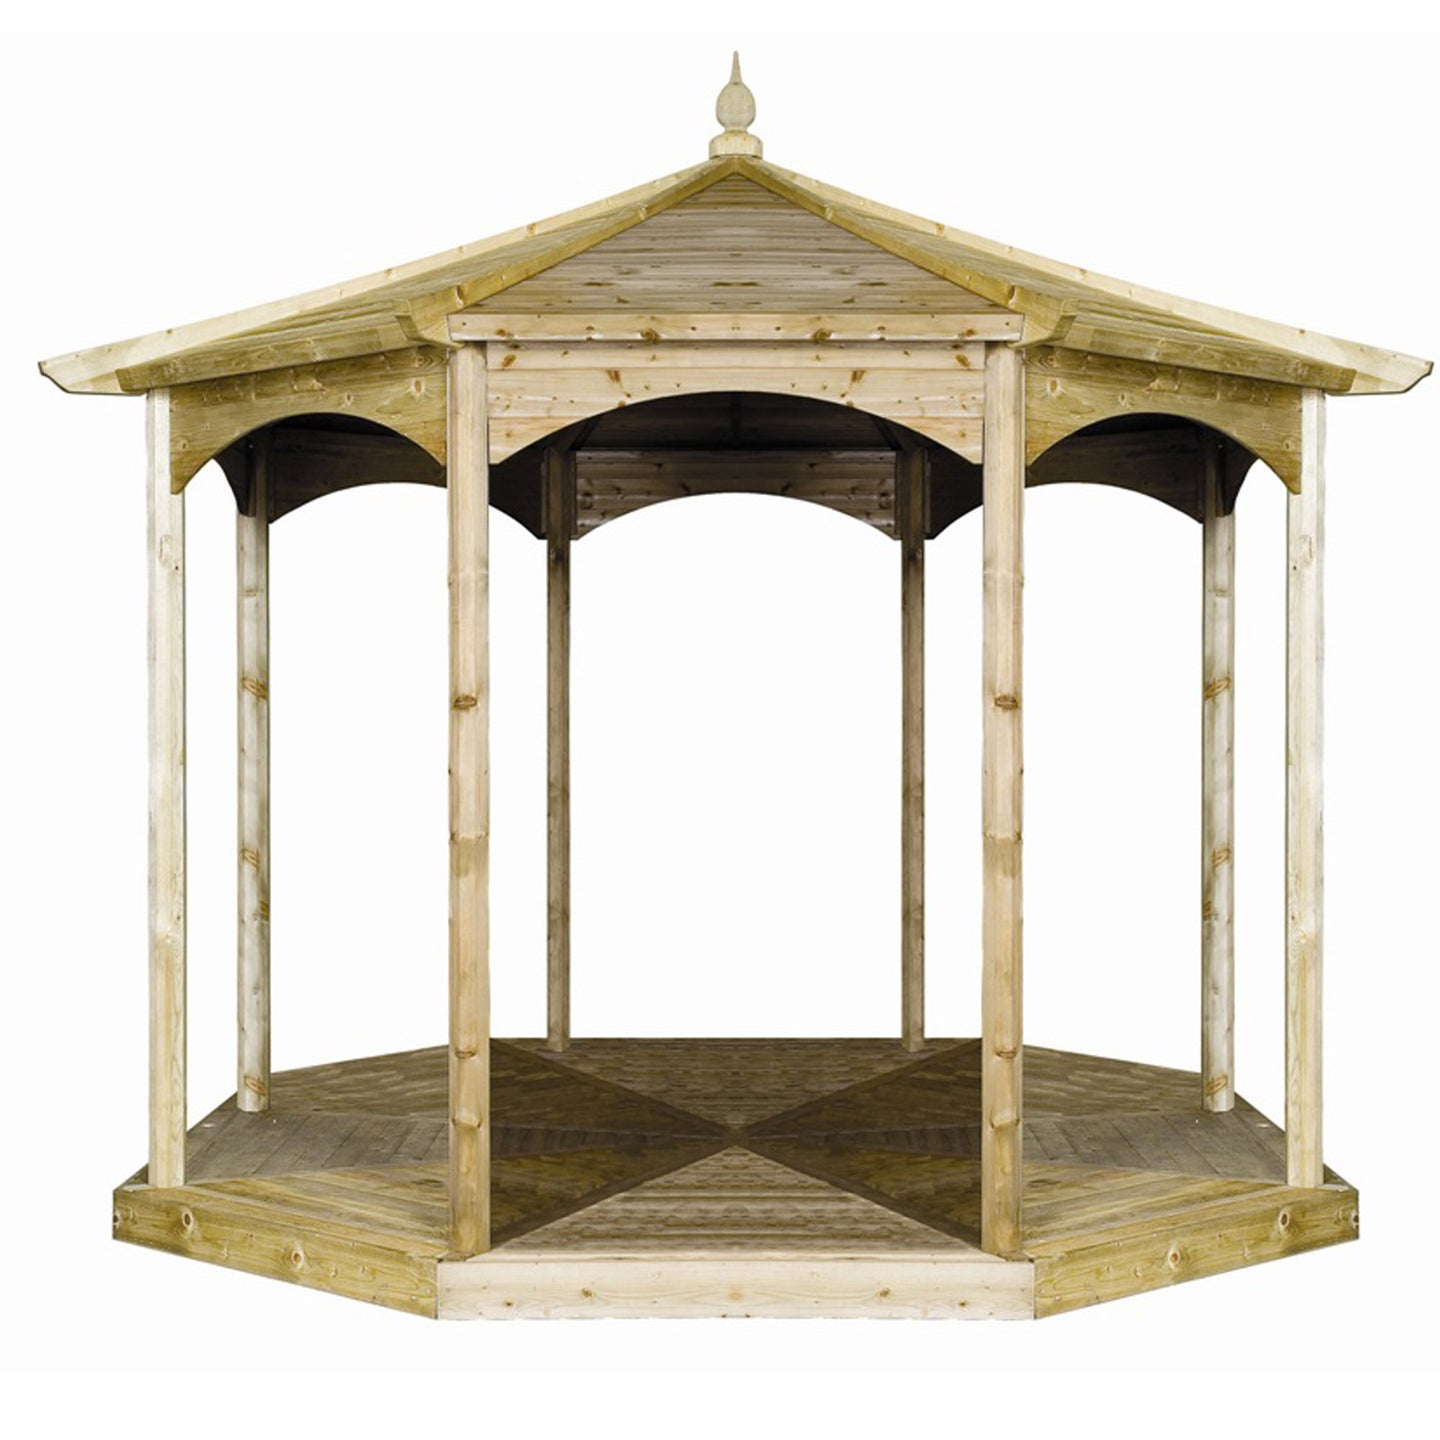 Regis Gazebo WAS £1,695 NOW £1,295